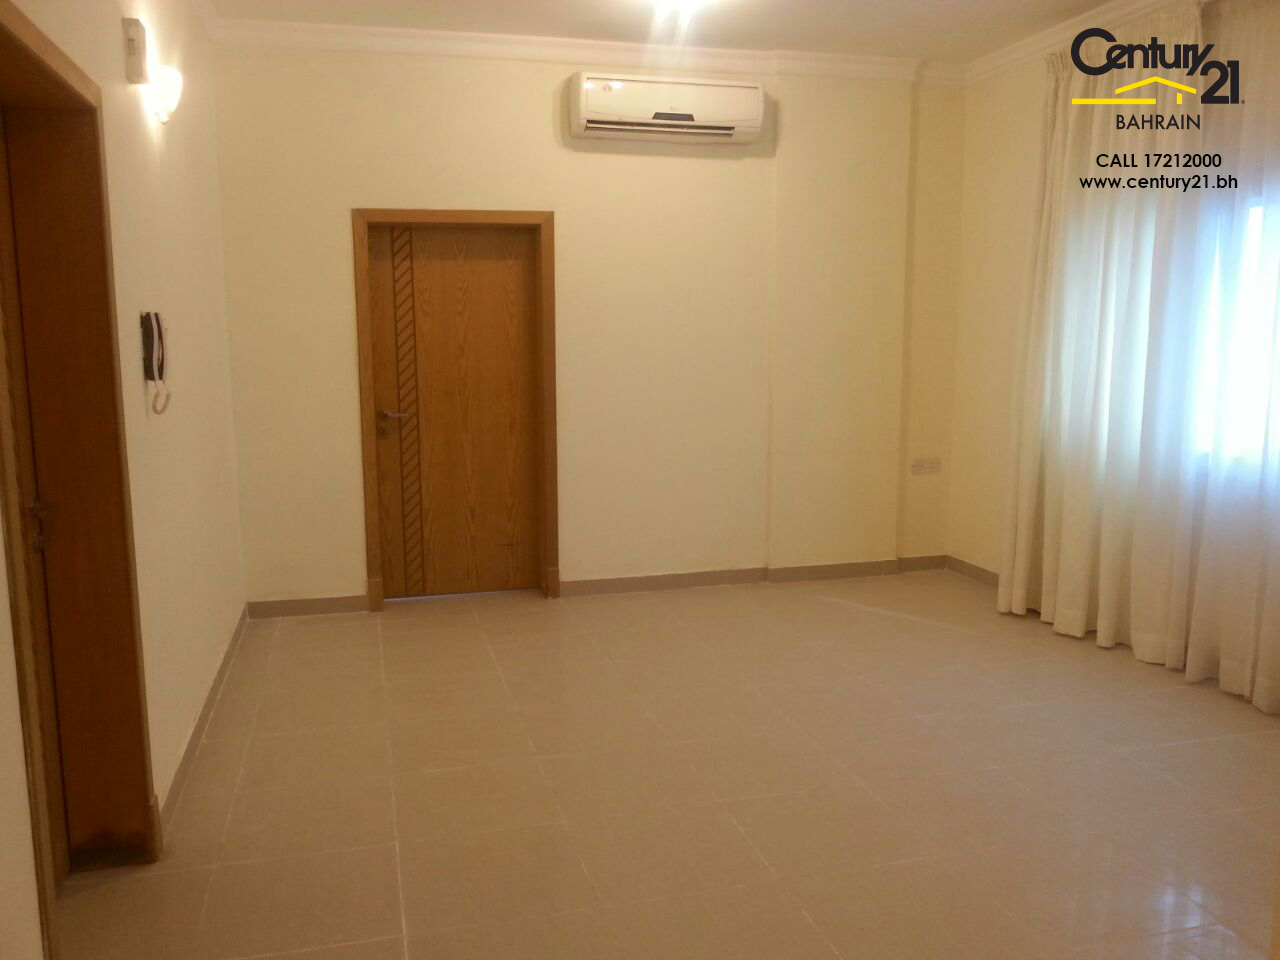 2 bedroom apartment for rent in hidd fr667 century 21 for 2 bedroom apartments for rent